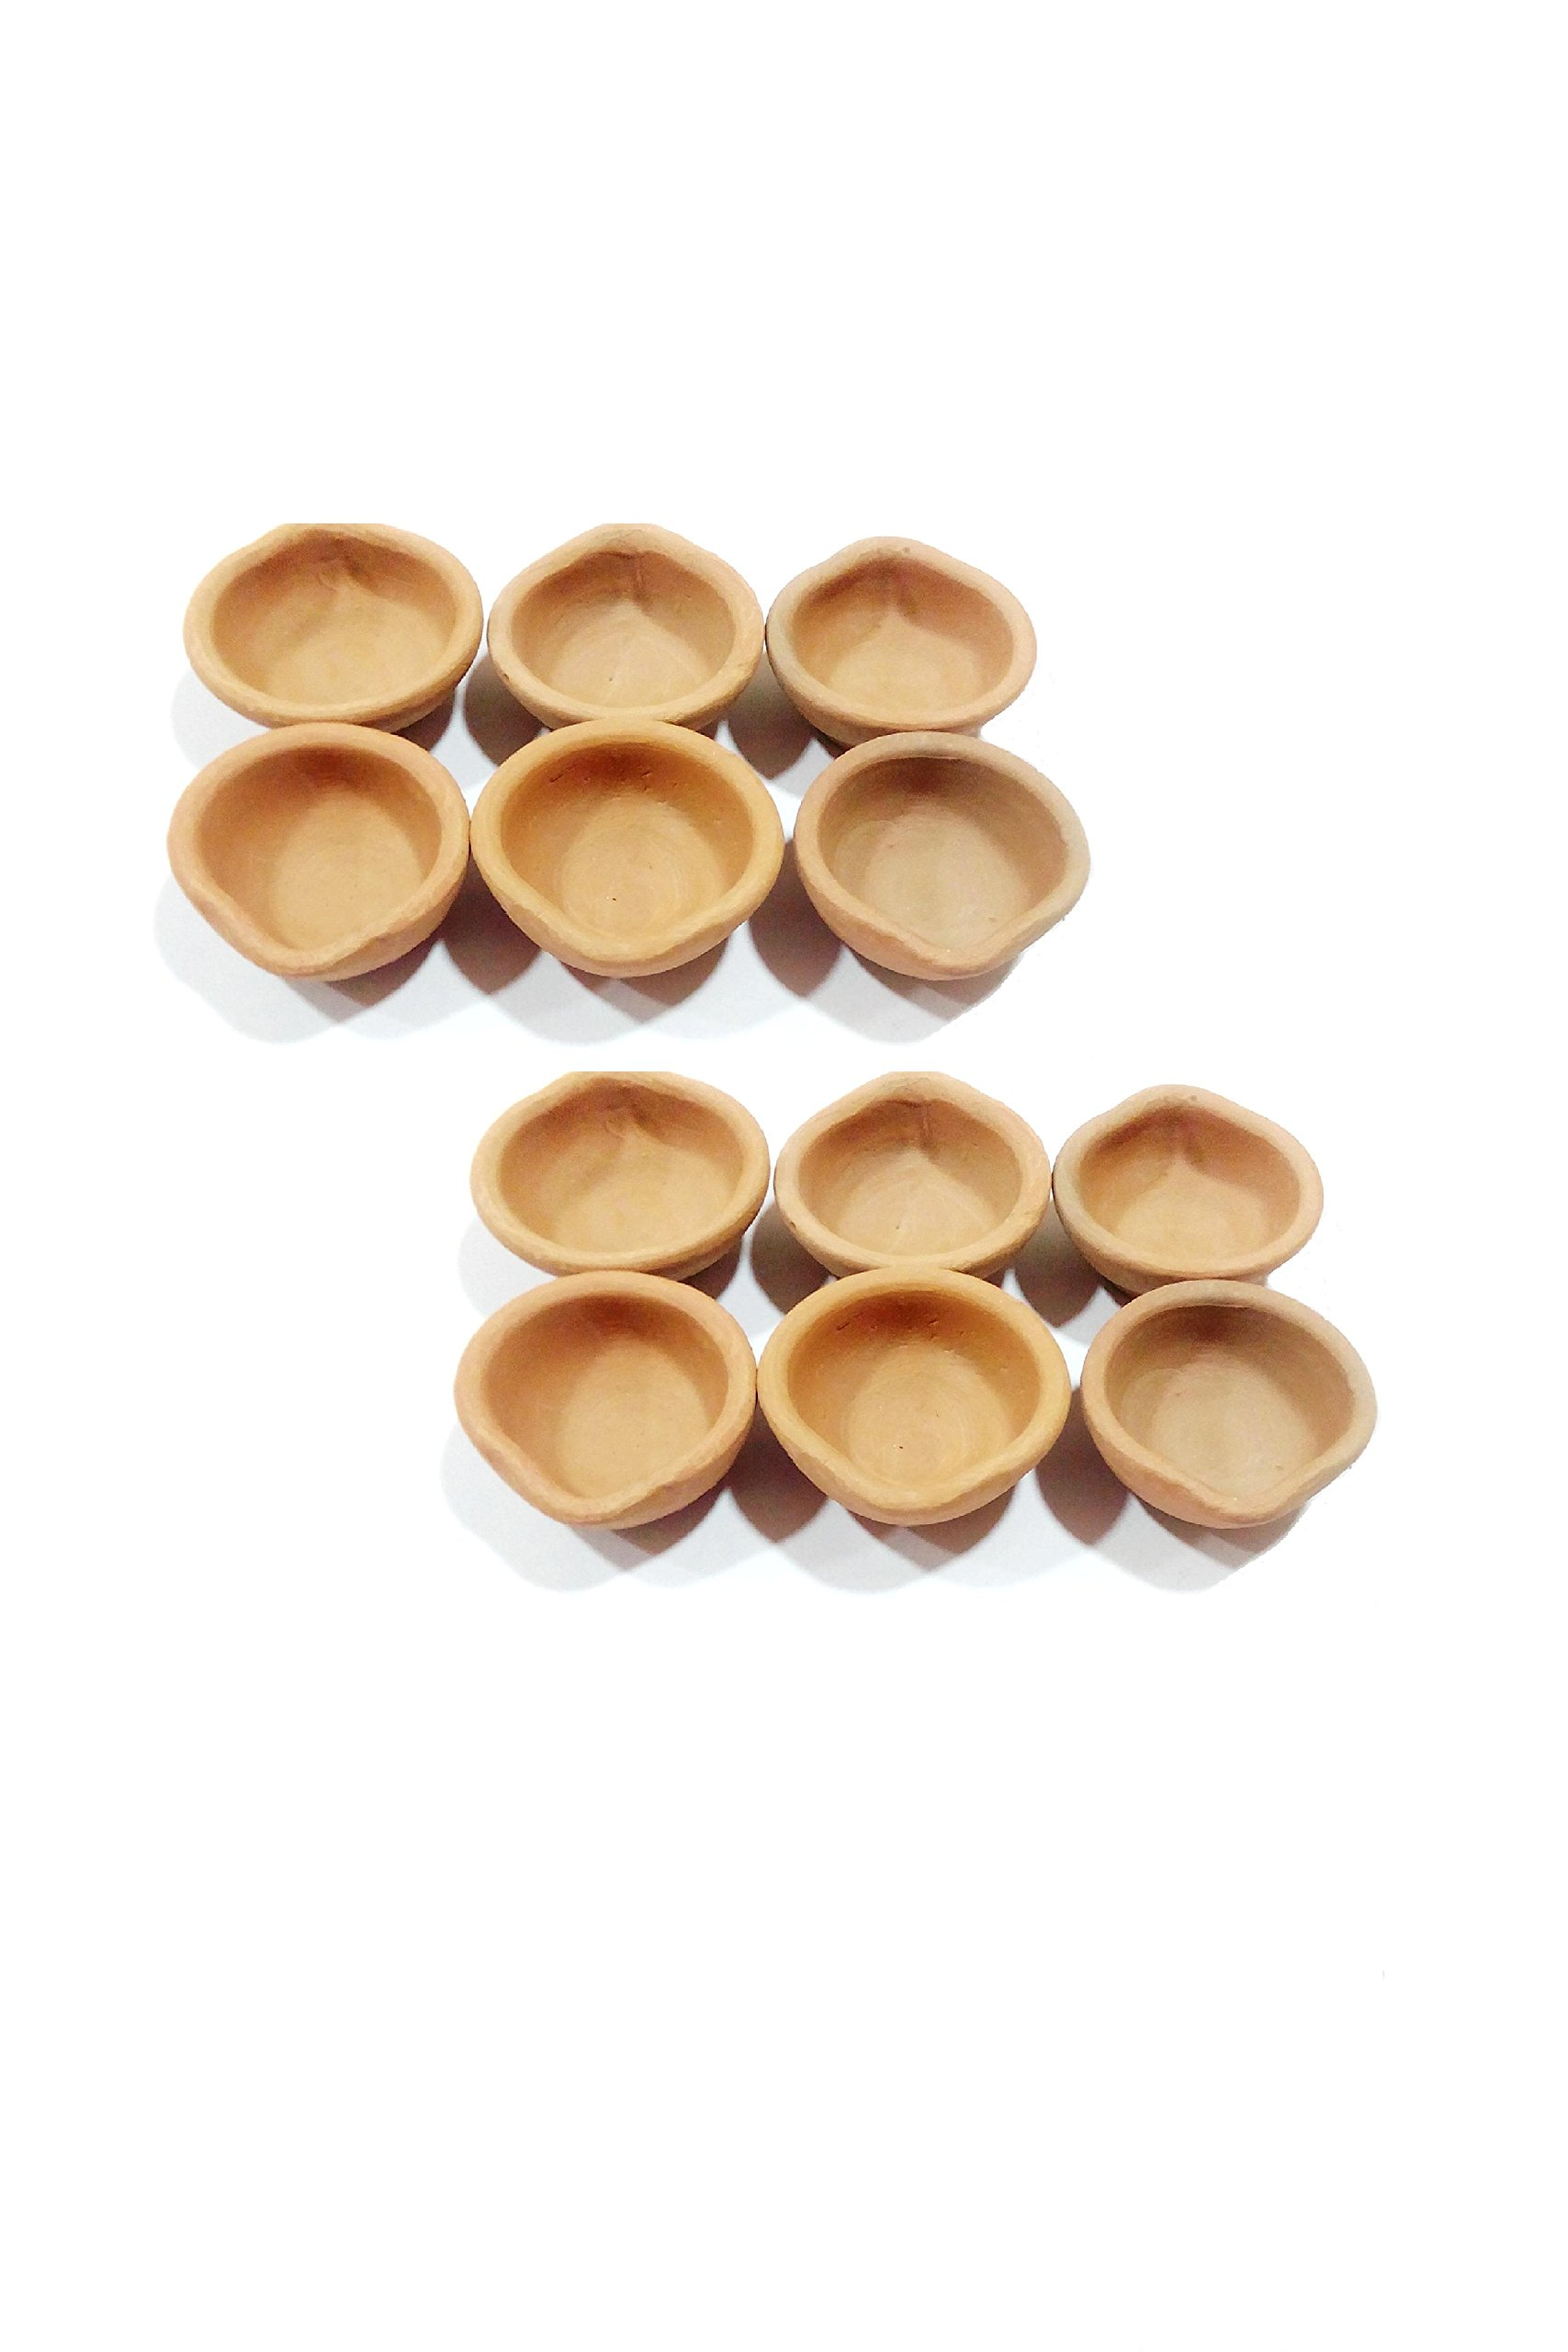 Storite 12 Pack of Traditional/Indian Hand Crafted With Earthen Clay Oil Lamps/Diyas/Deepak For Gifts/Decorations/Festivals/Temples + Free Pack of Wicks/Bati (12)